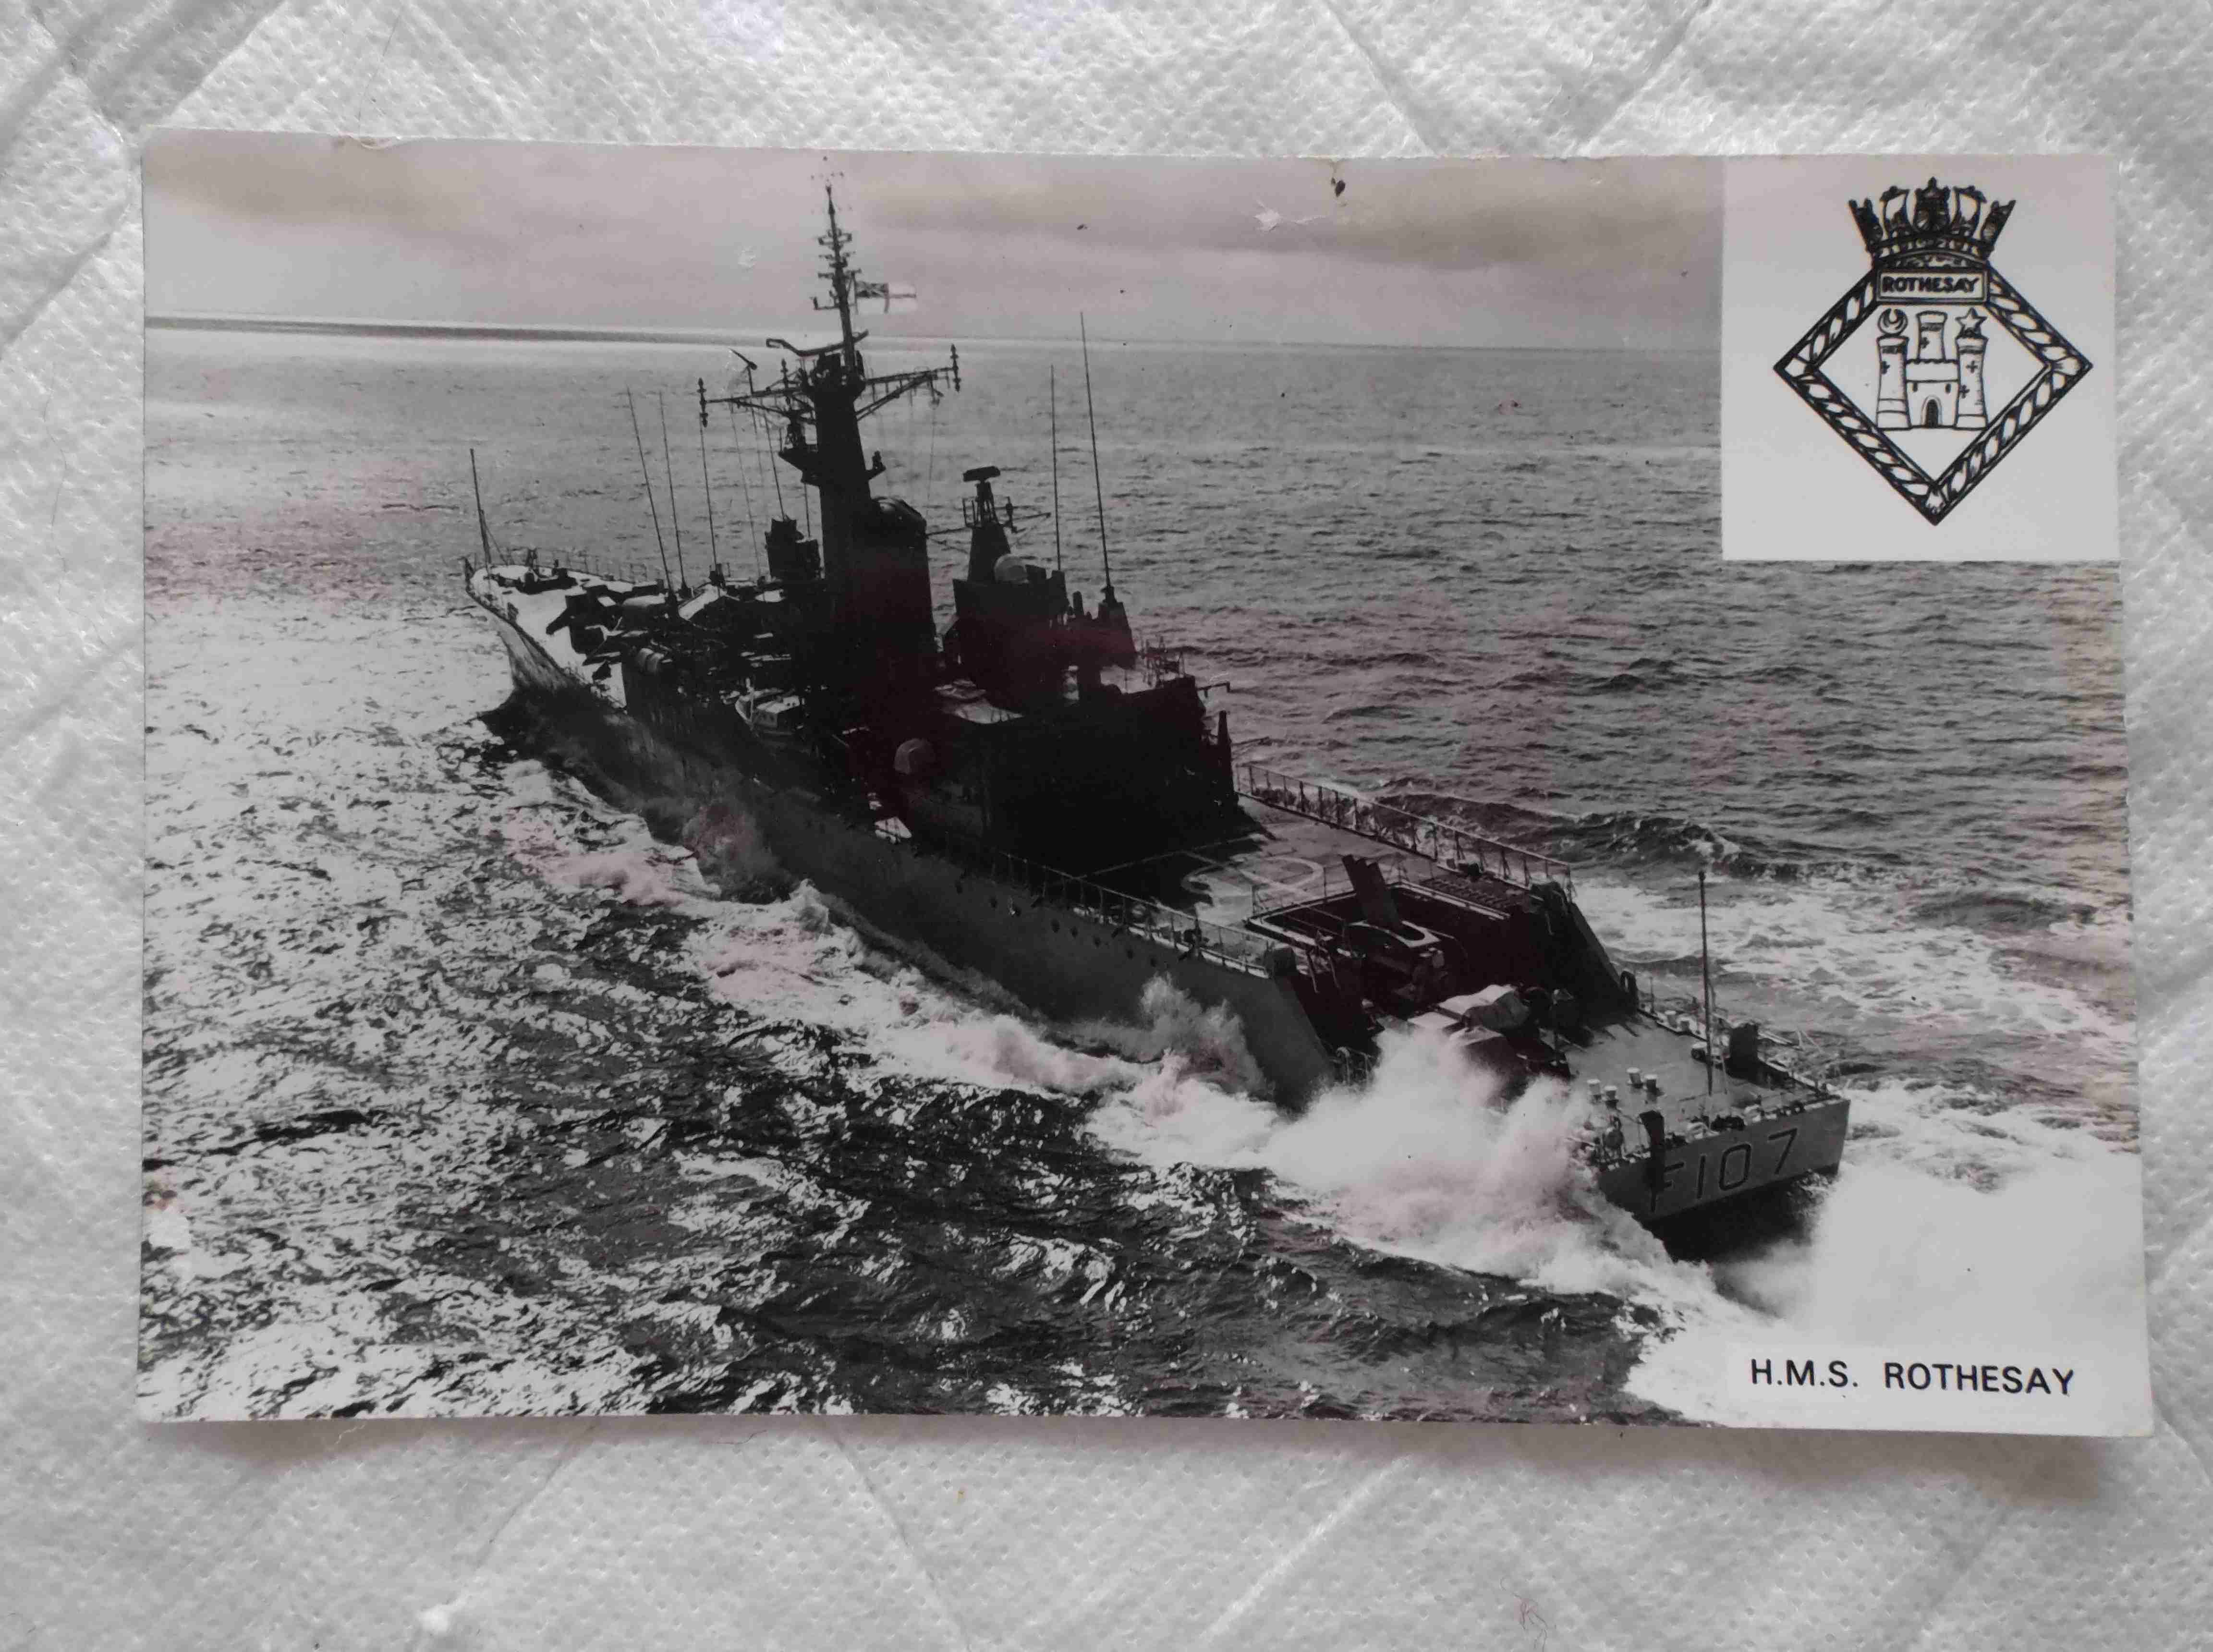 POSTCARD SIZE PHOTOGRAPH OF THE ROYAL NAVAL VESSEL HMS ROTHESAY